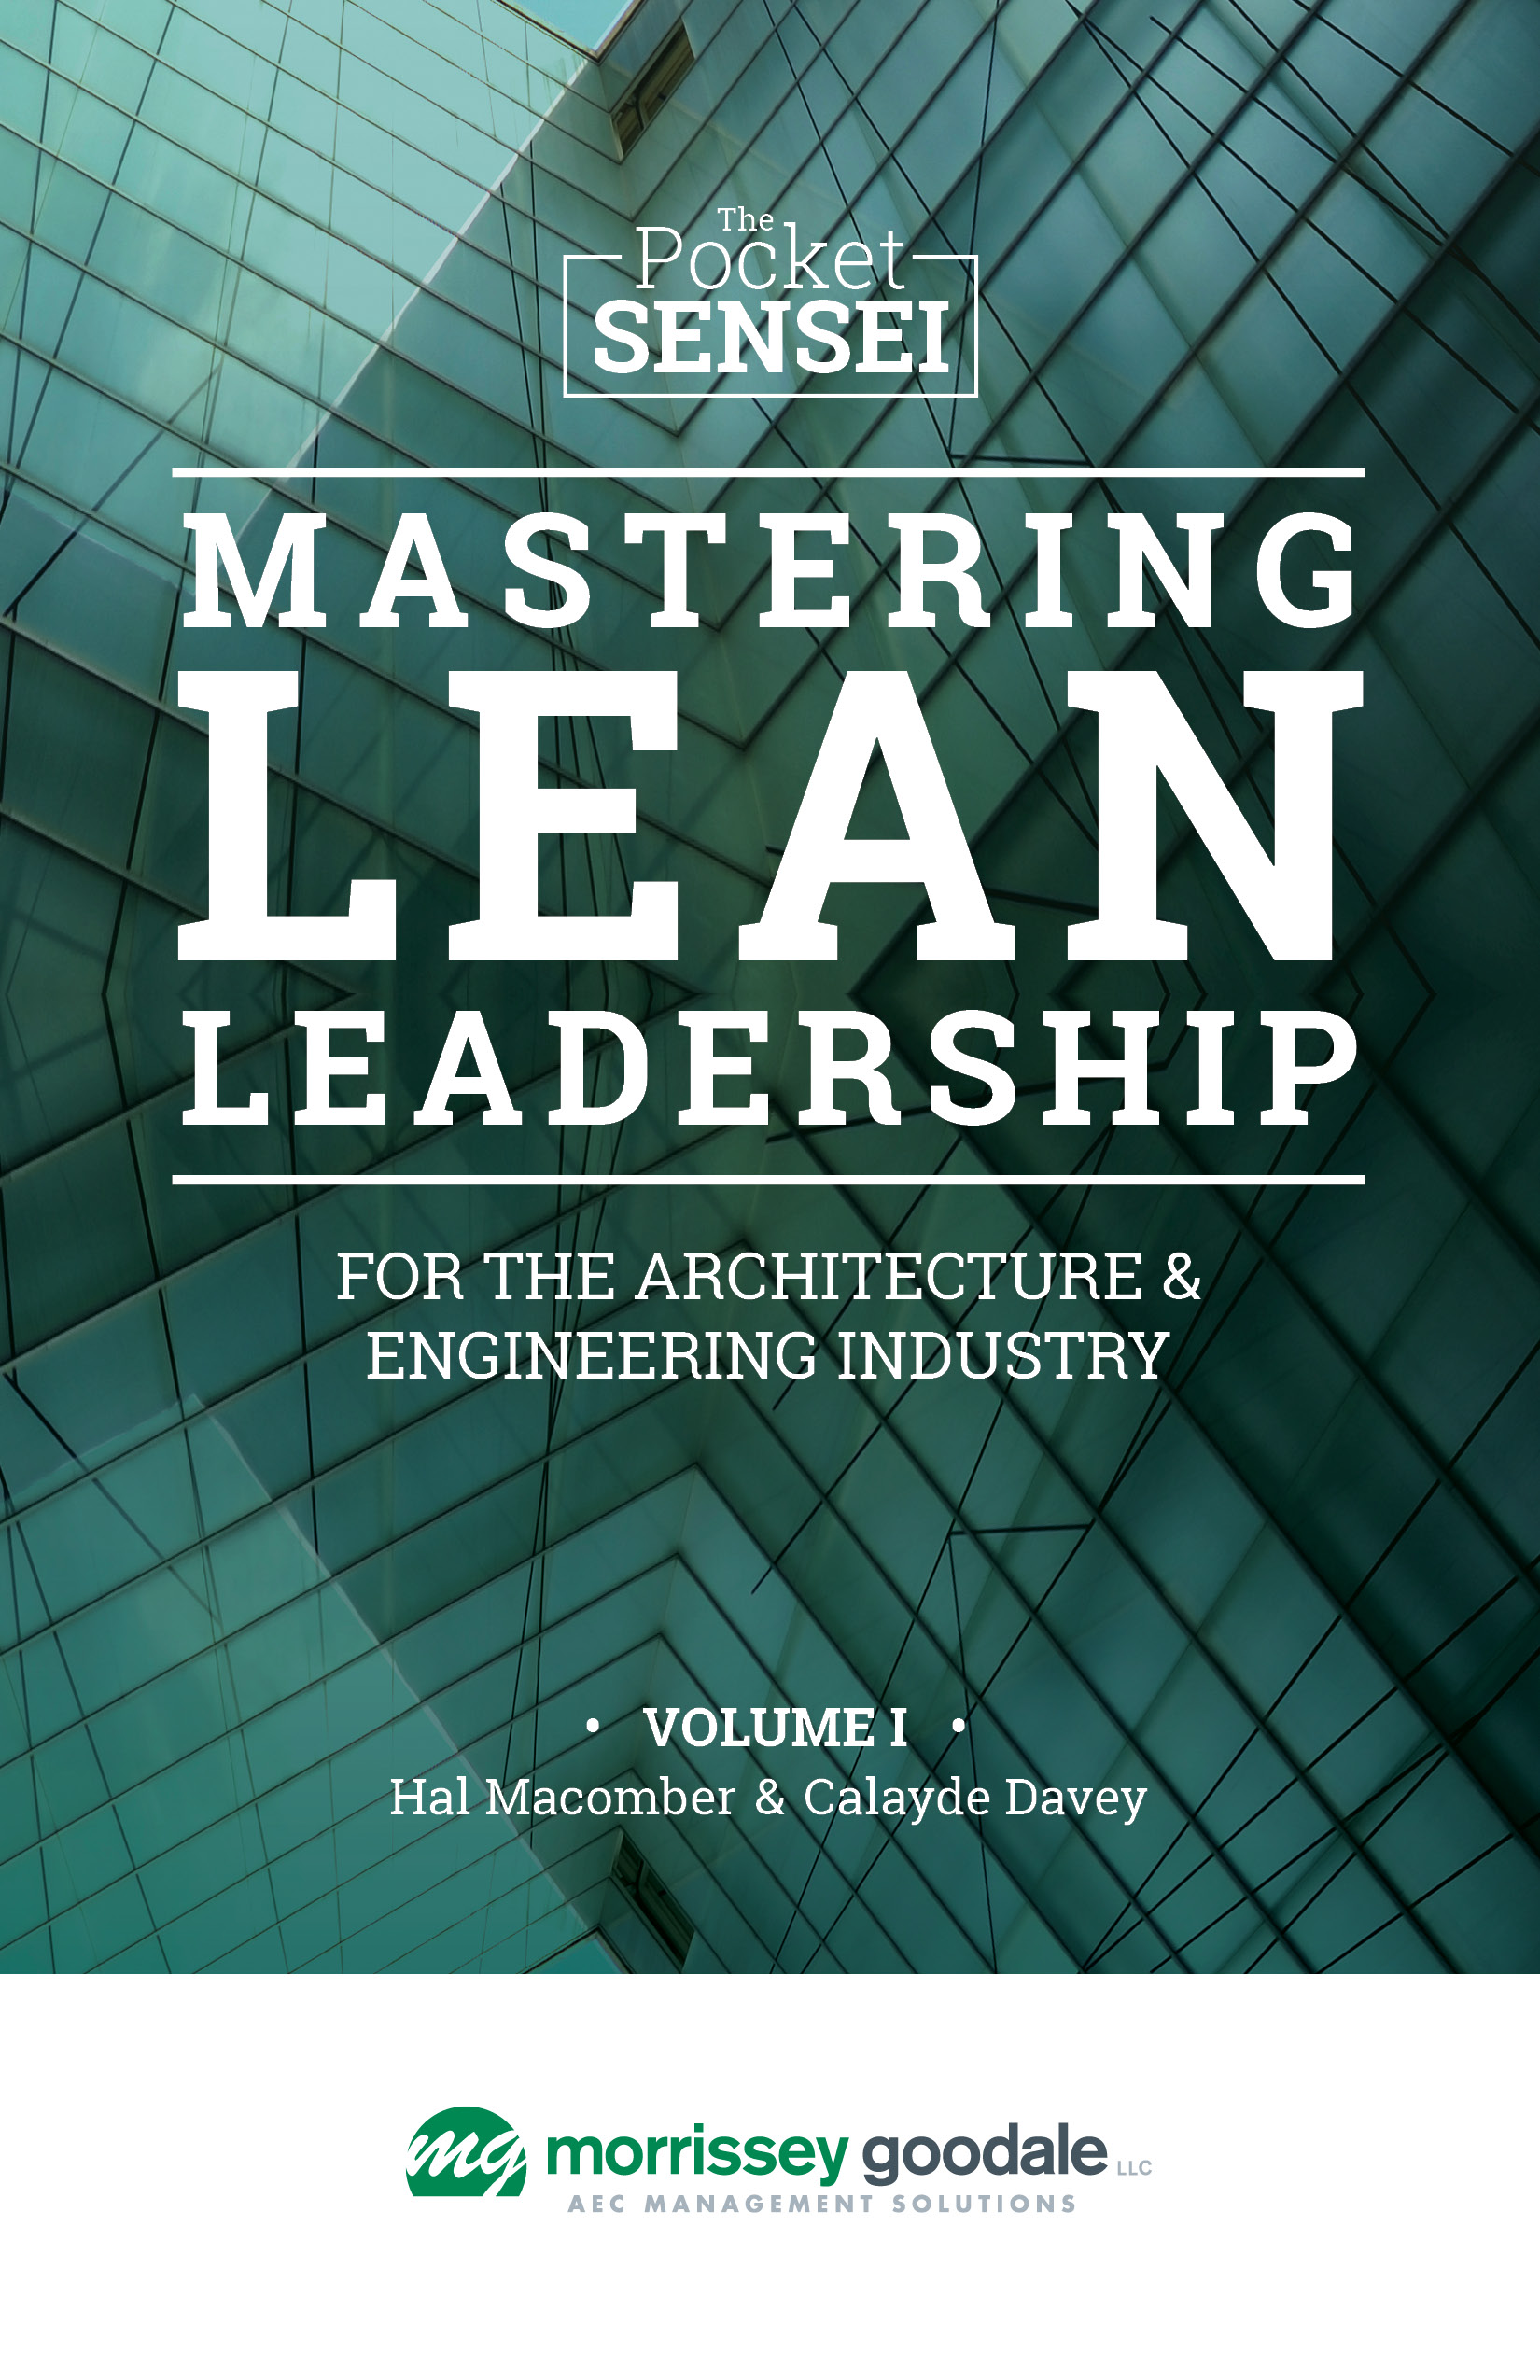 Special Edition - Architecture & Engineering Industry